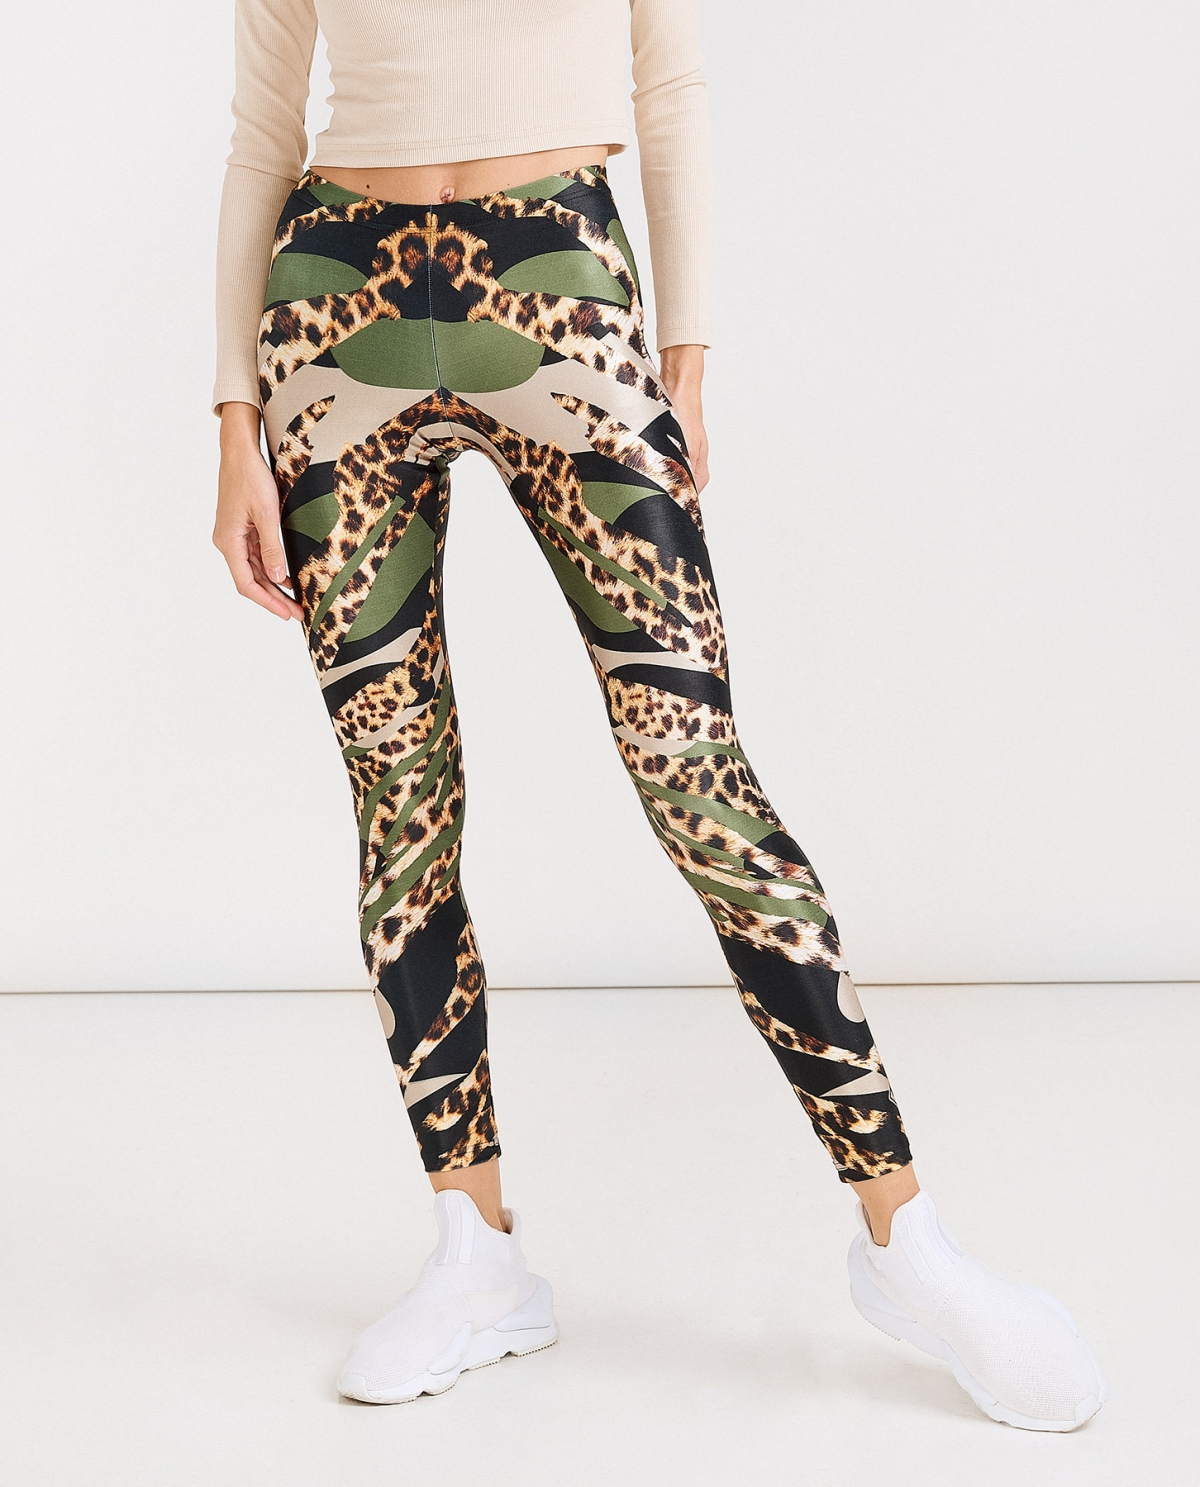 Wild Camo Leggings